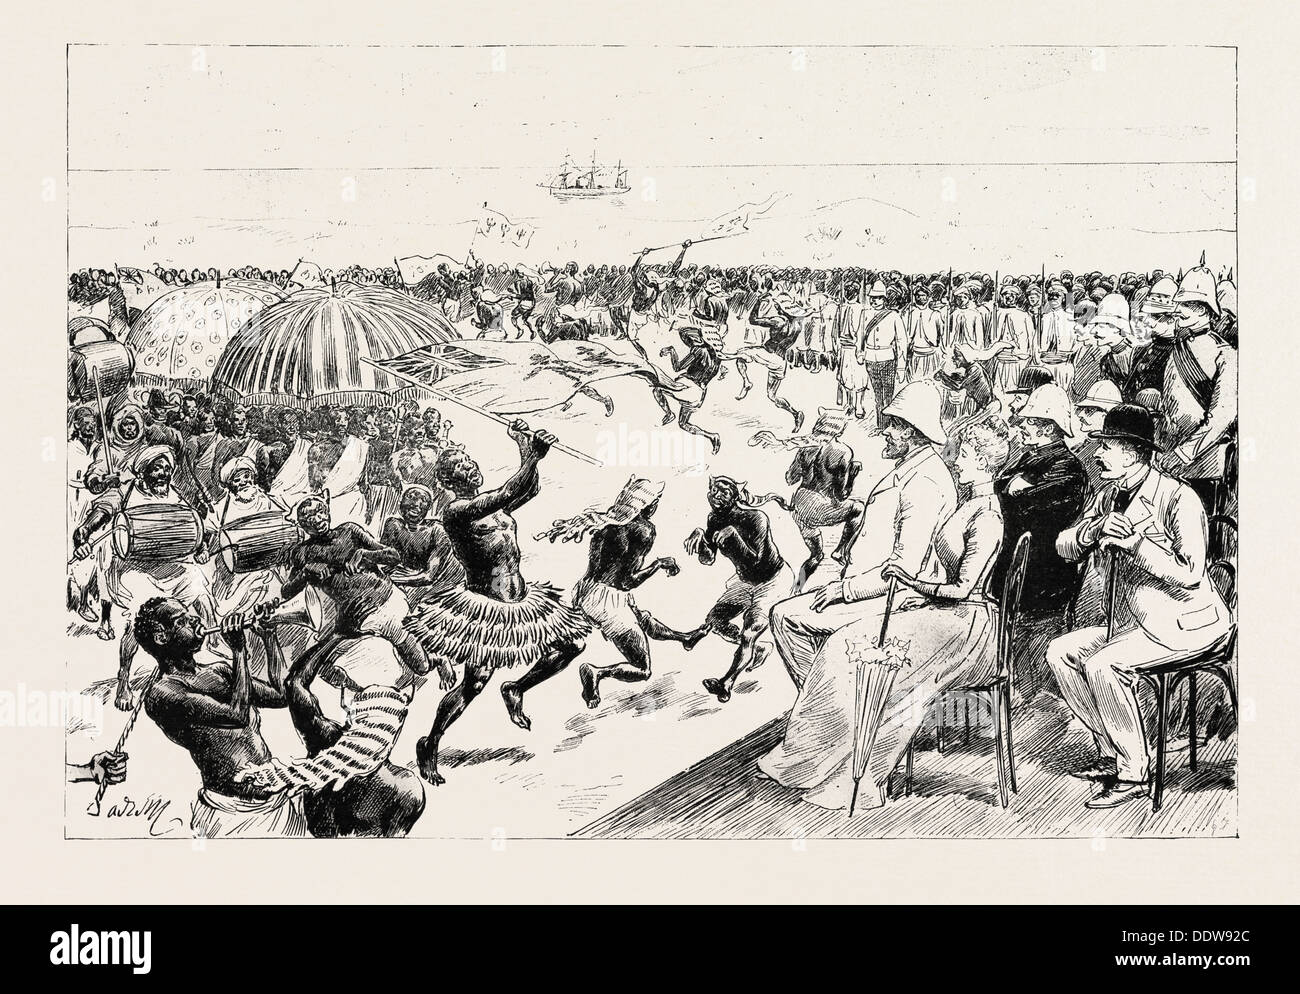 THE RECEPTION OF SIR BALDWIN GRIFFITH, K.C.M.G., THE NEW GOVERNOR OF THE GOLD COAST, AT CAPE COAST CASTLE, GHANA, 1890 engraving - Stock Image